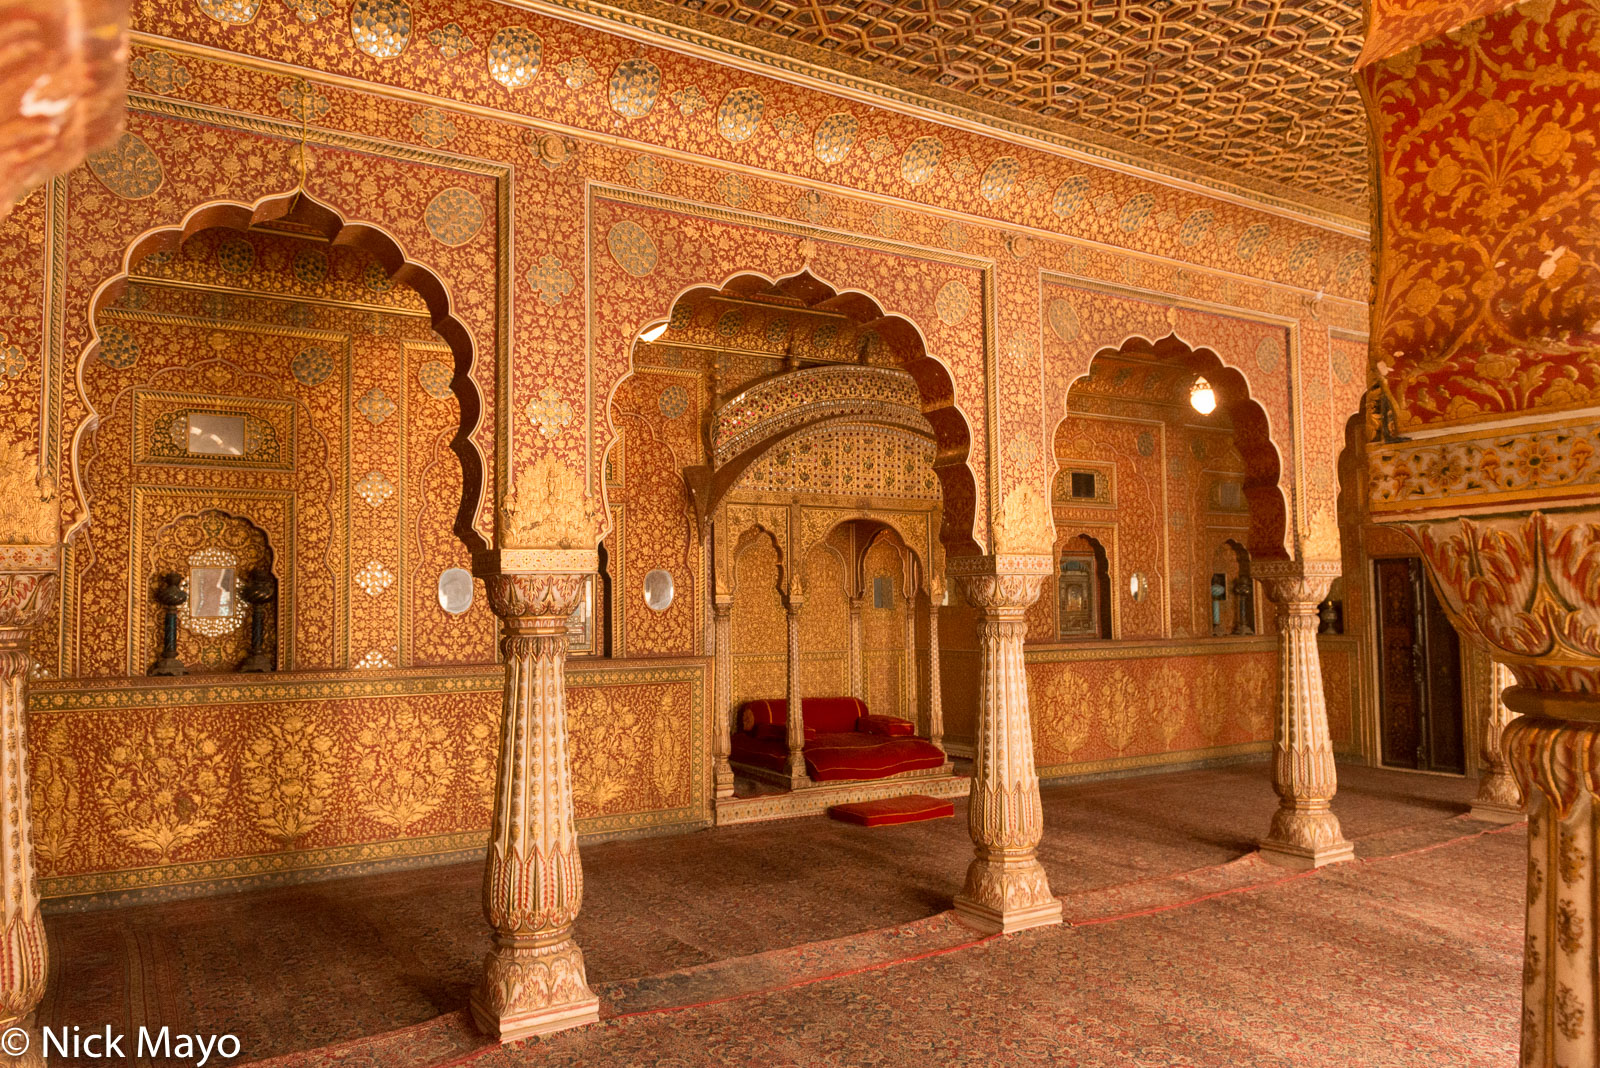 Fort, India, Rajasthan, Throne, photo